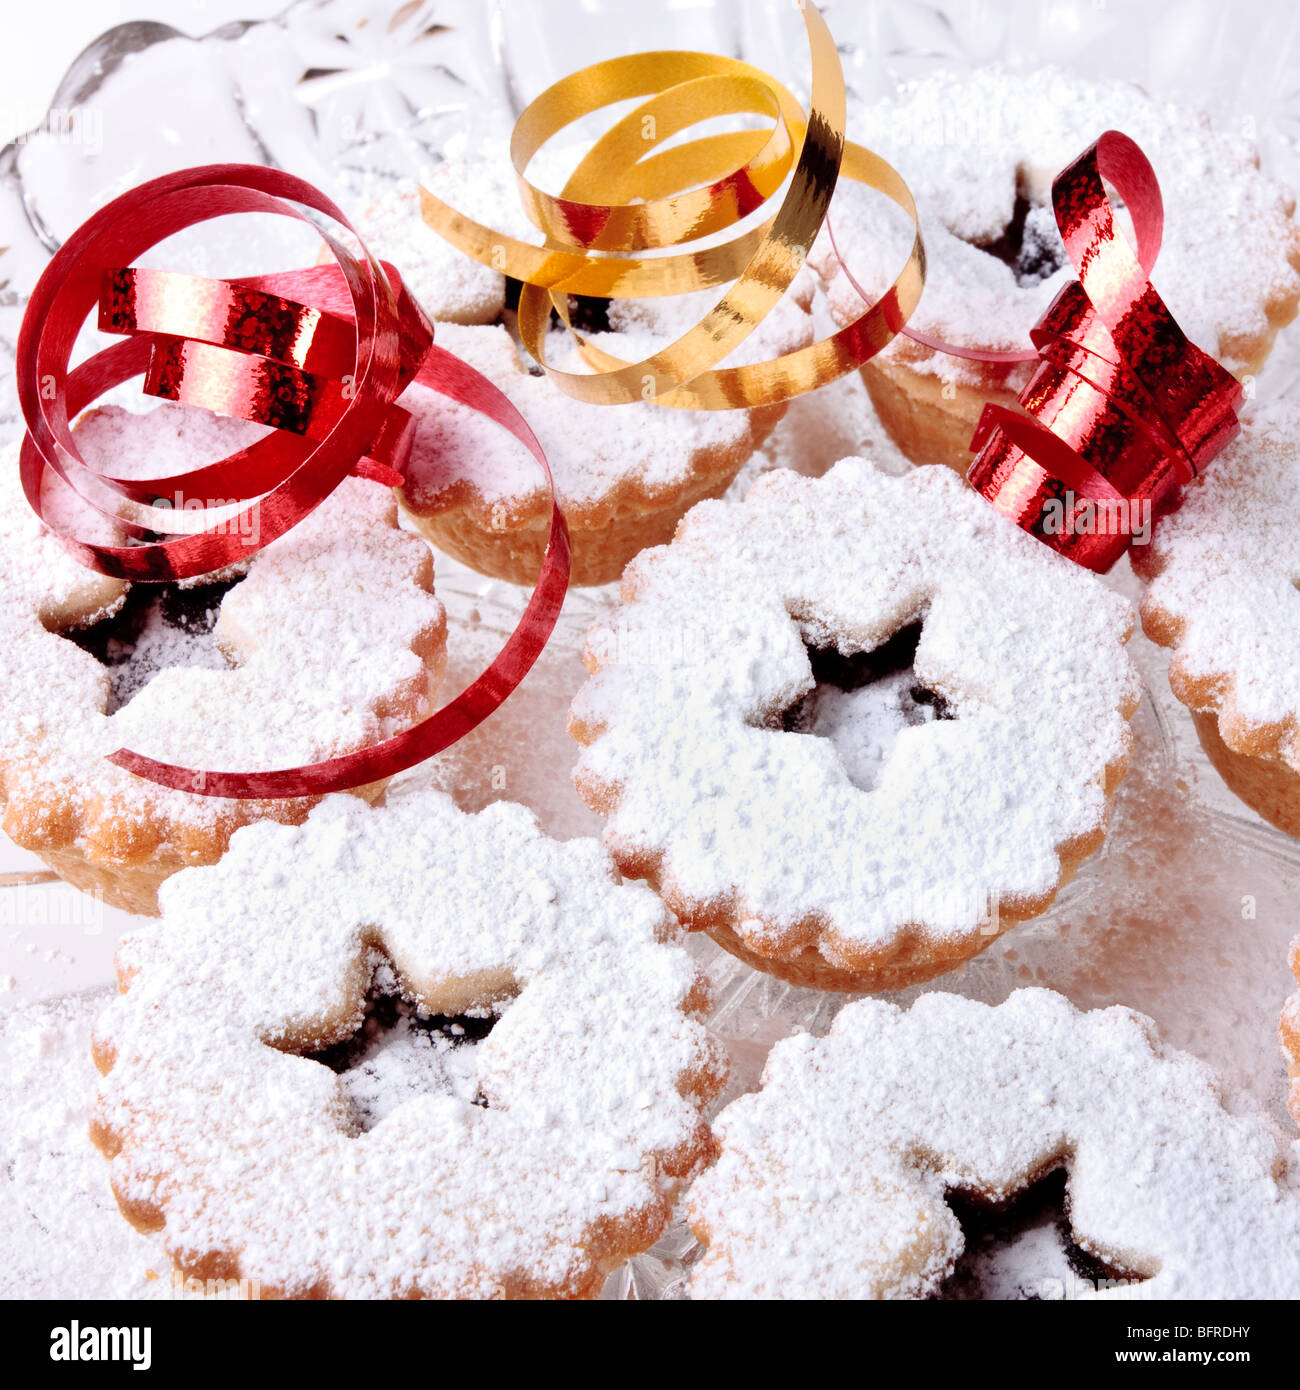 Background image of Sweet Mince Pies and ribbons dusted with icing sugar. - Stock Image